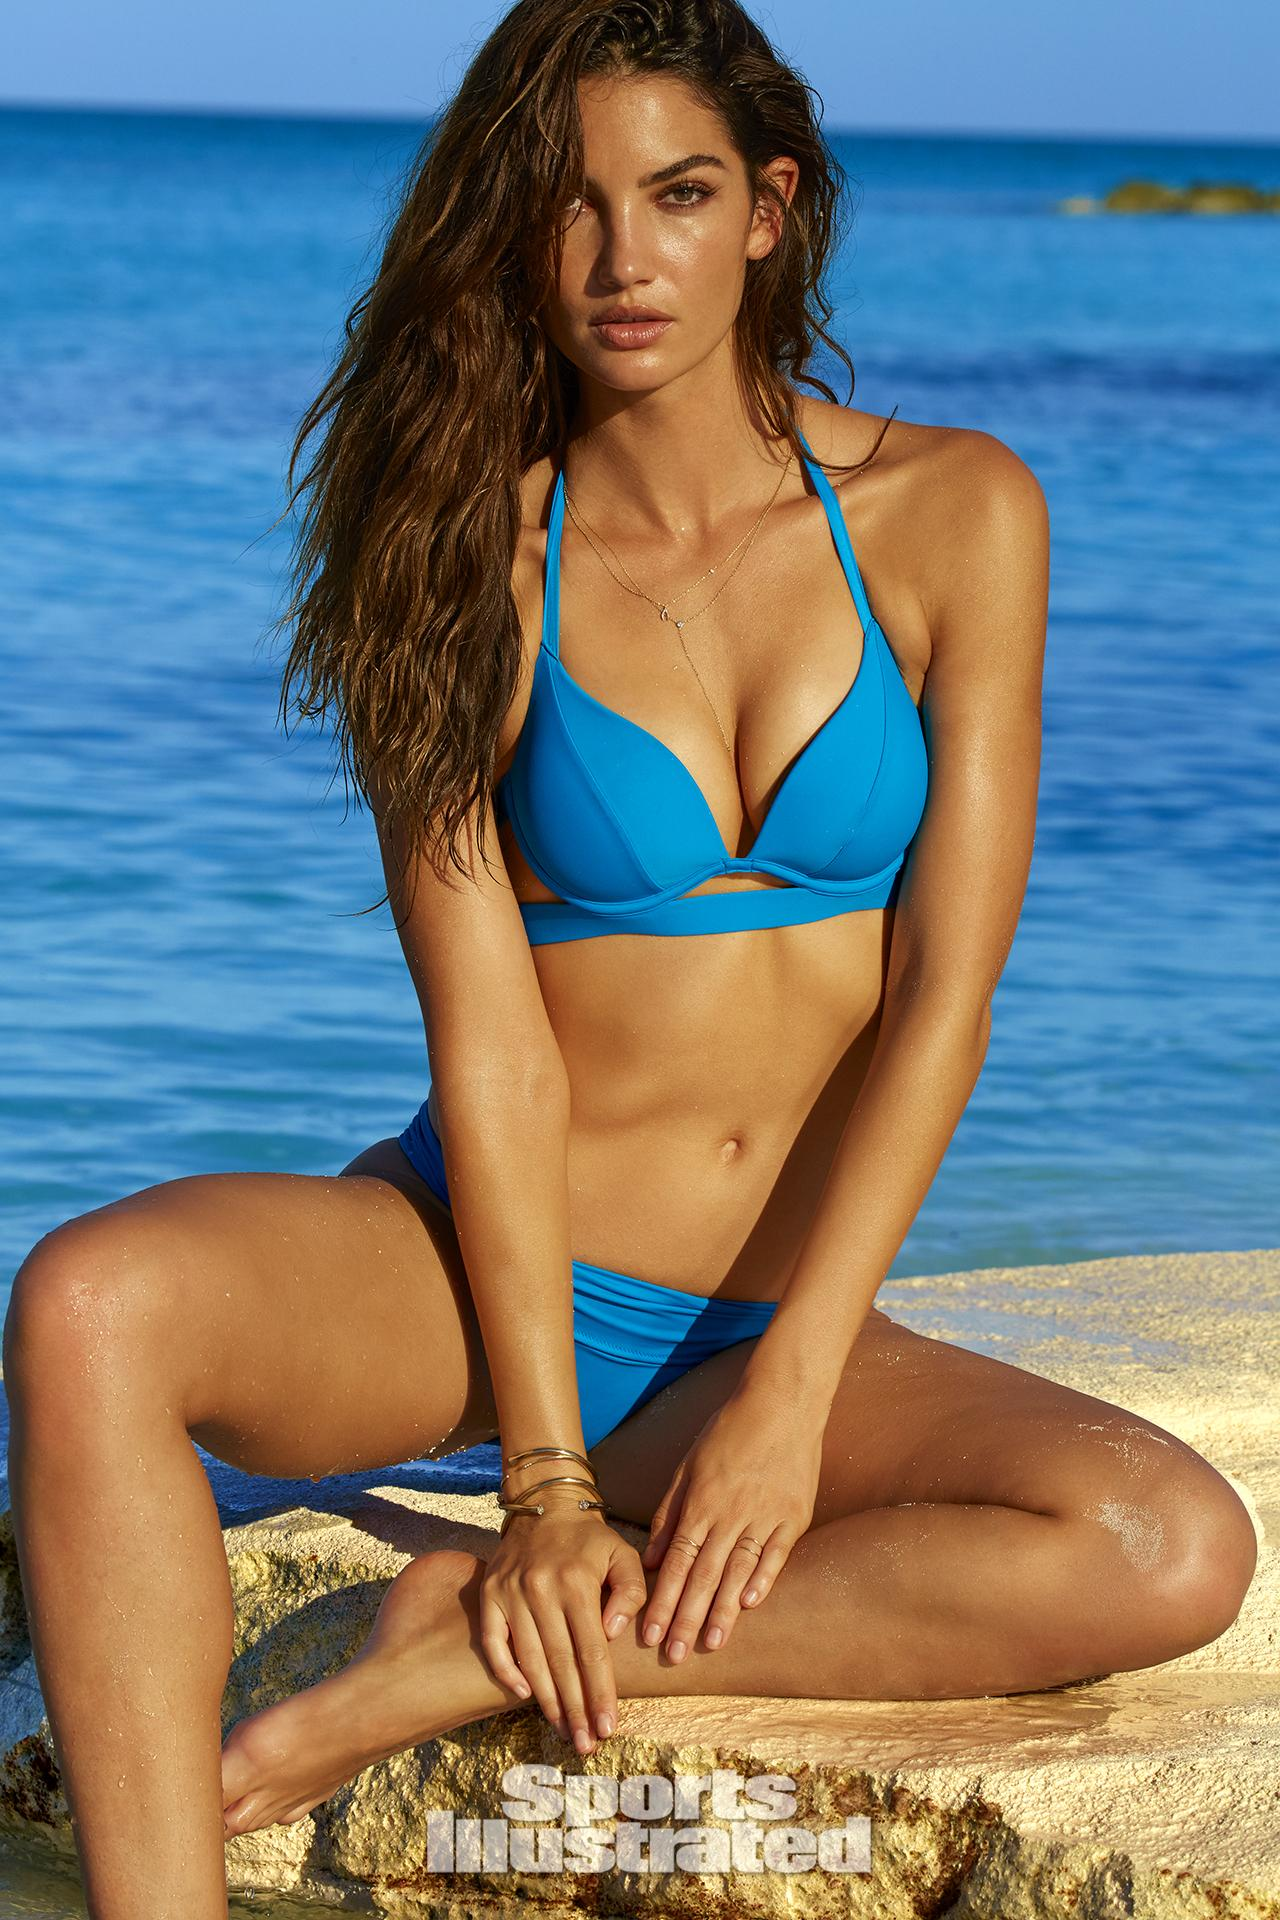 """This year's Sports Illustrated Swimsuit issue is about more than just celebrating the models' bodies. Named """"In Her Own Words"""" the project was shot by an all-female team who handed over."""